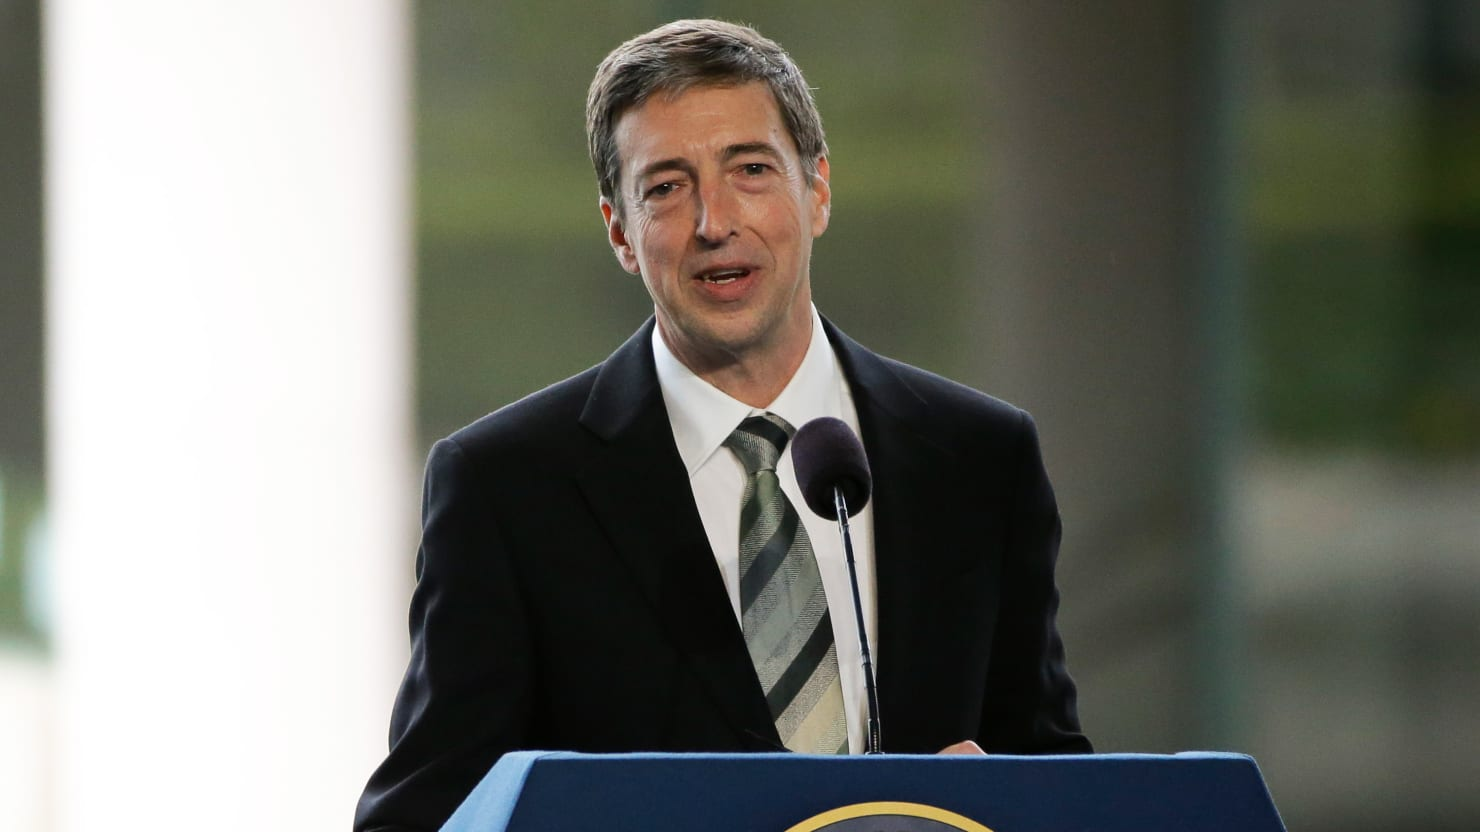 Ron Reagan: My Father, Ronald Reagan, Would Not Want Republicans to Vote for 'Traitor' Trump in 2020